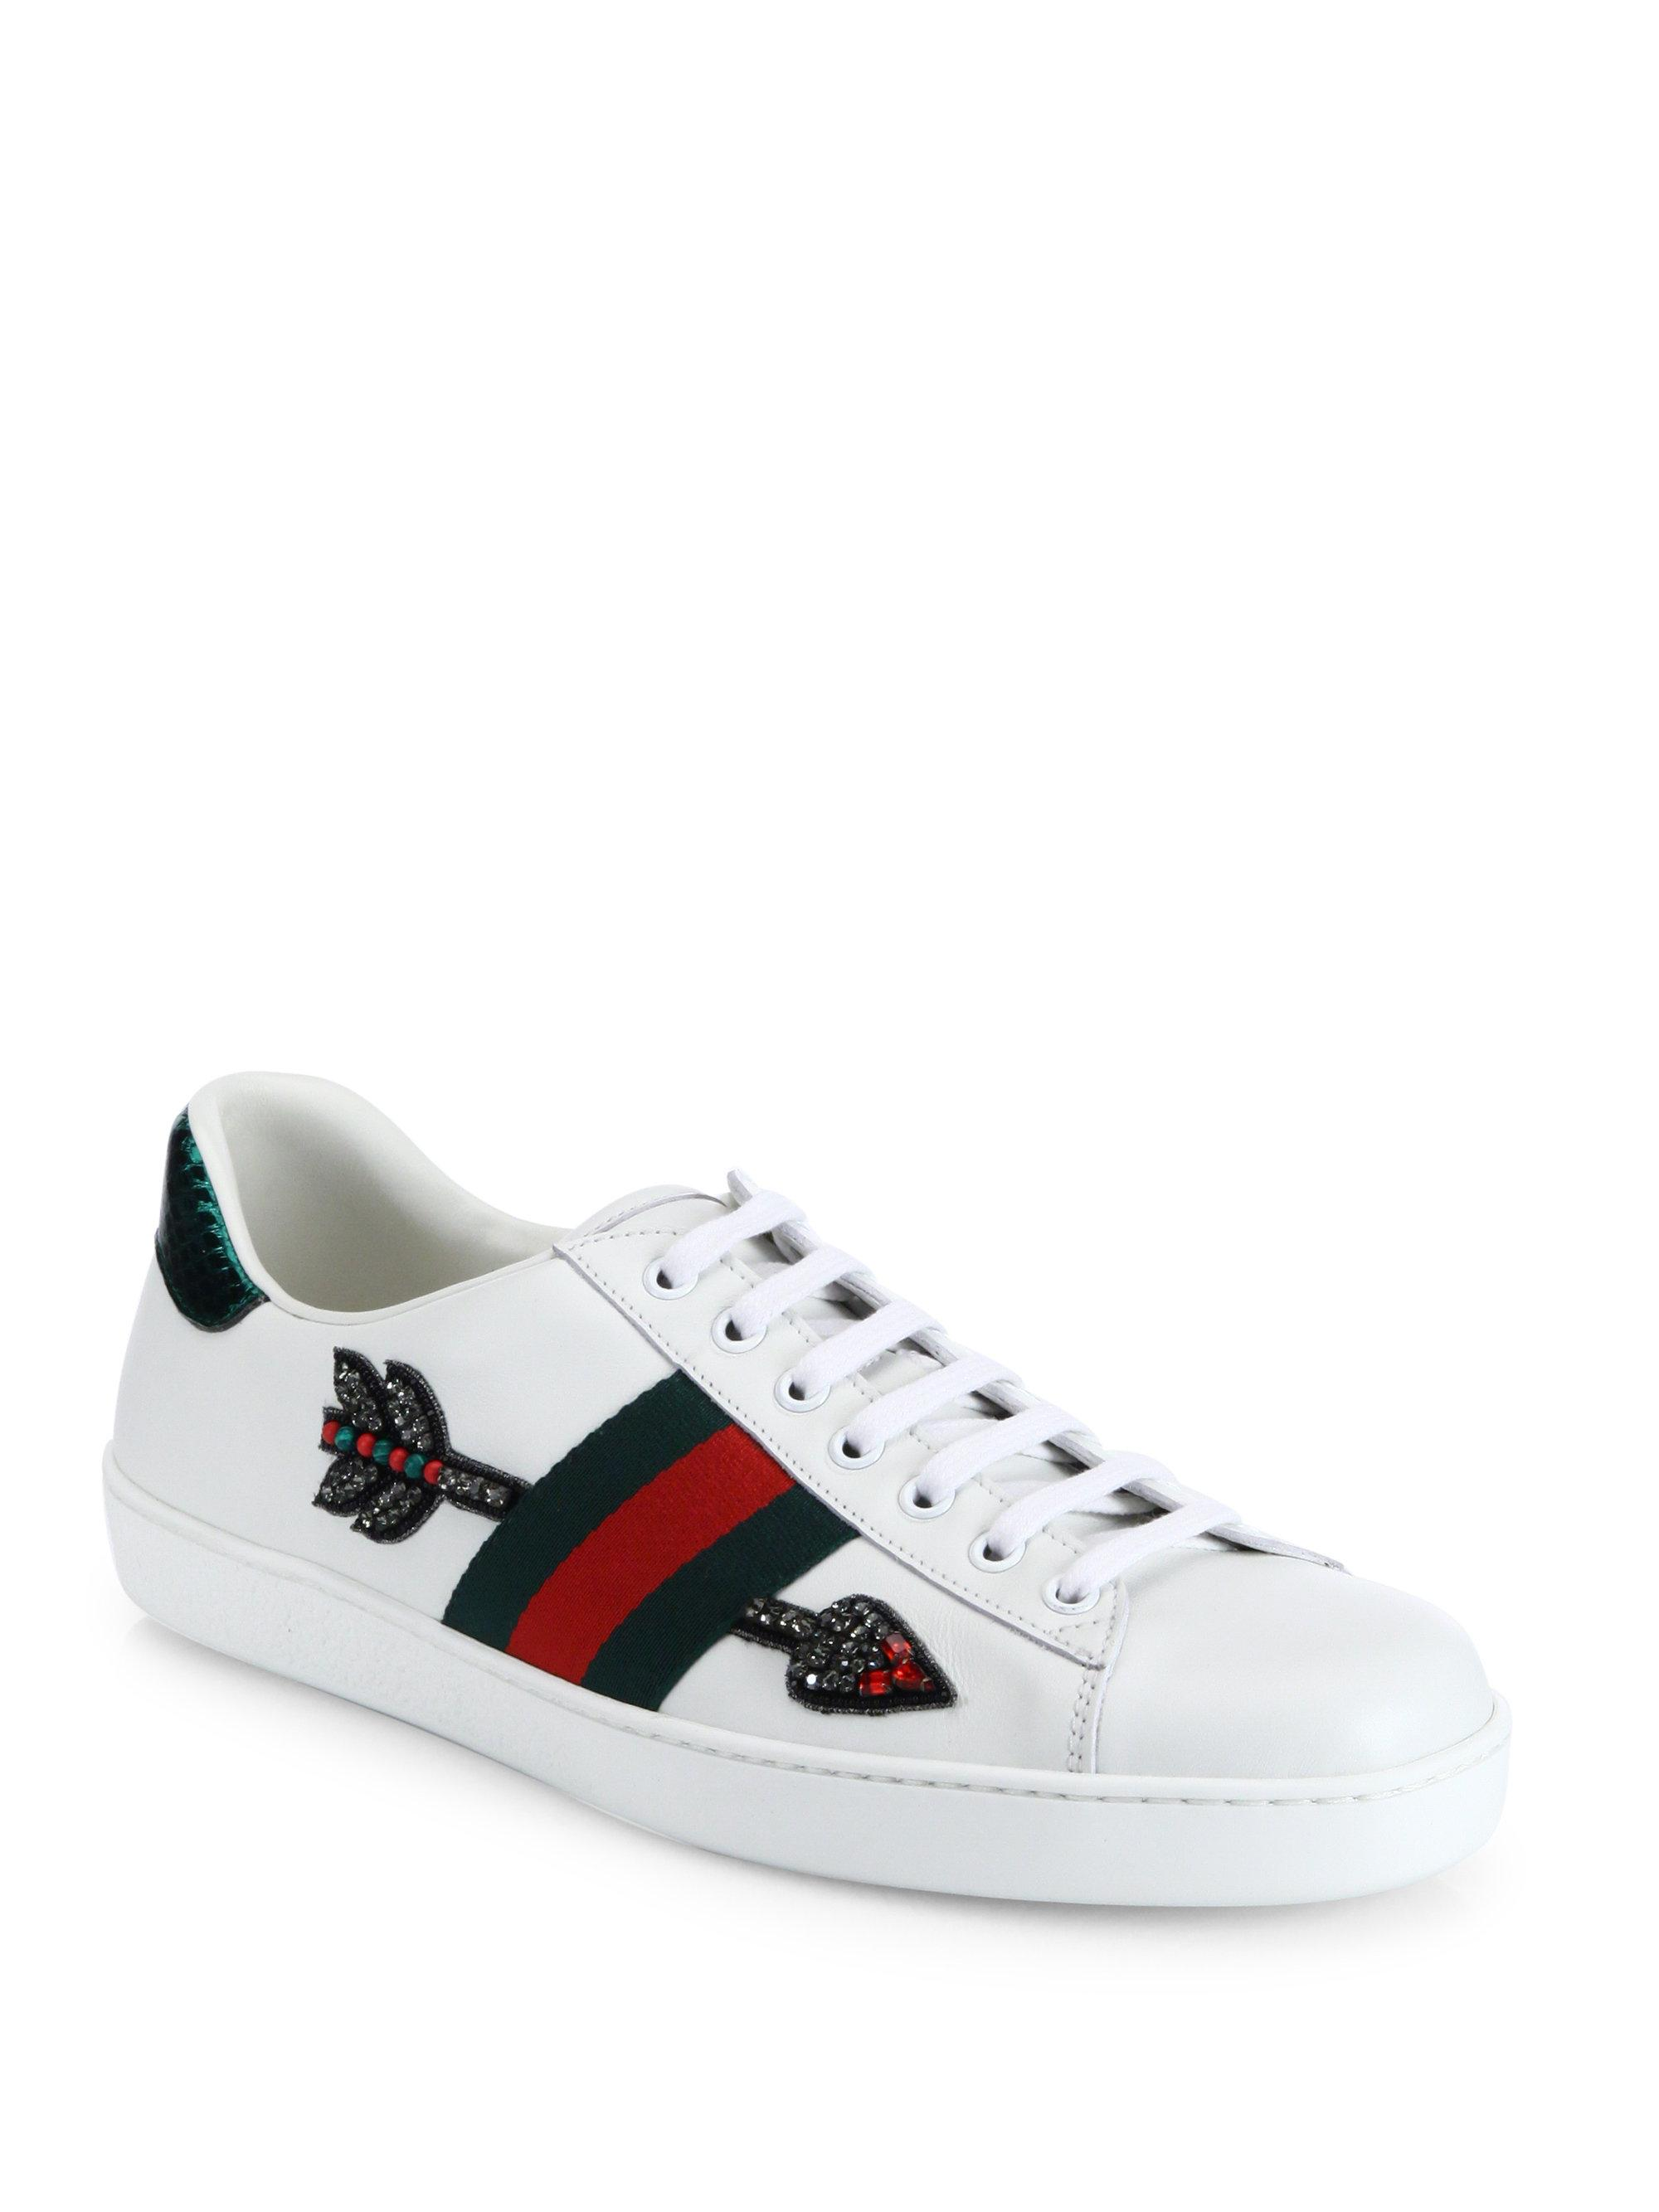 bb508683595 Lyst - Gucci New Ace Embroidered Low-top Sneakers in White for Men